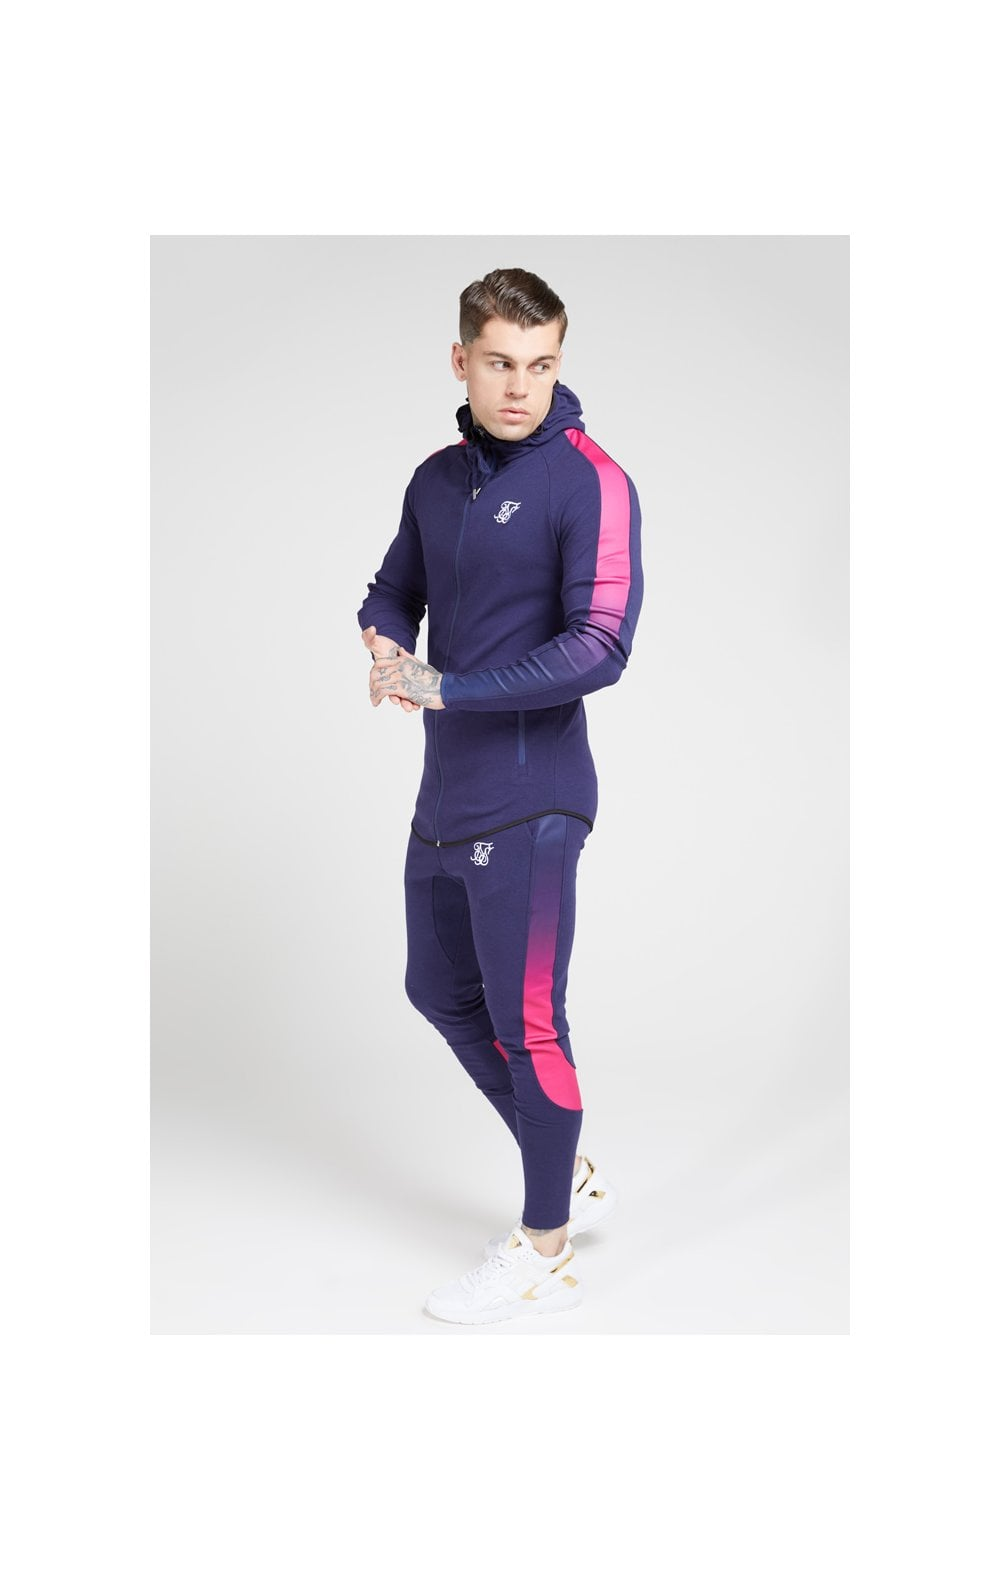 SikSilk Athlete Tech Fade Track Pants – Navy & Neon Fade (5)